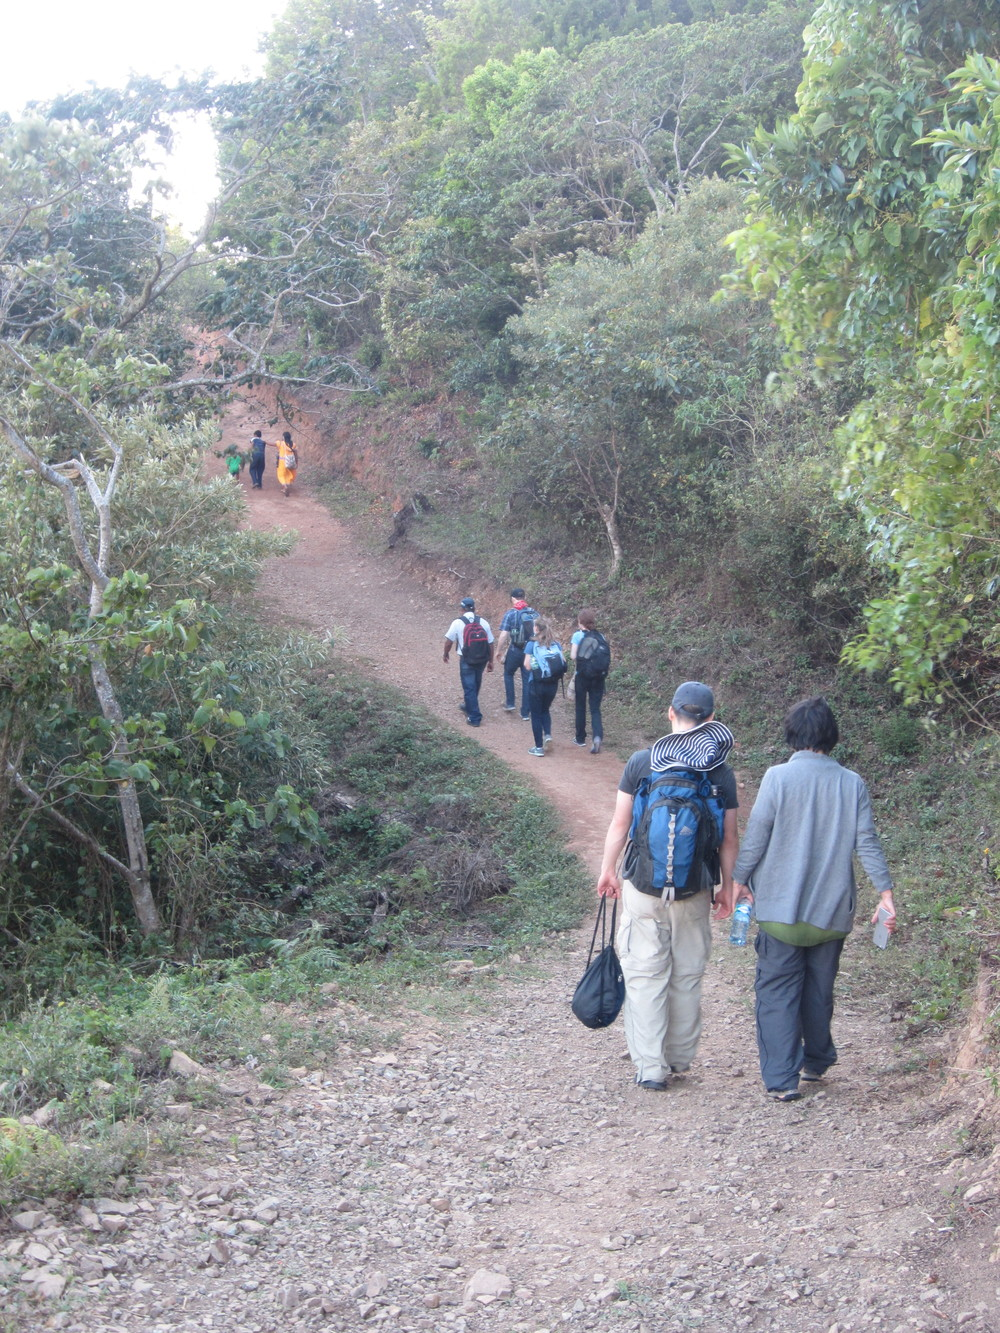 7. Hiking up to the village of Hato Ratón where many of our scholars live to stay with FFC volunteer Ramon Pineda and his family. The long pick-up truck ride and hike reminded us of the many transportation challenges our students face when going to school.